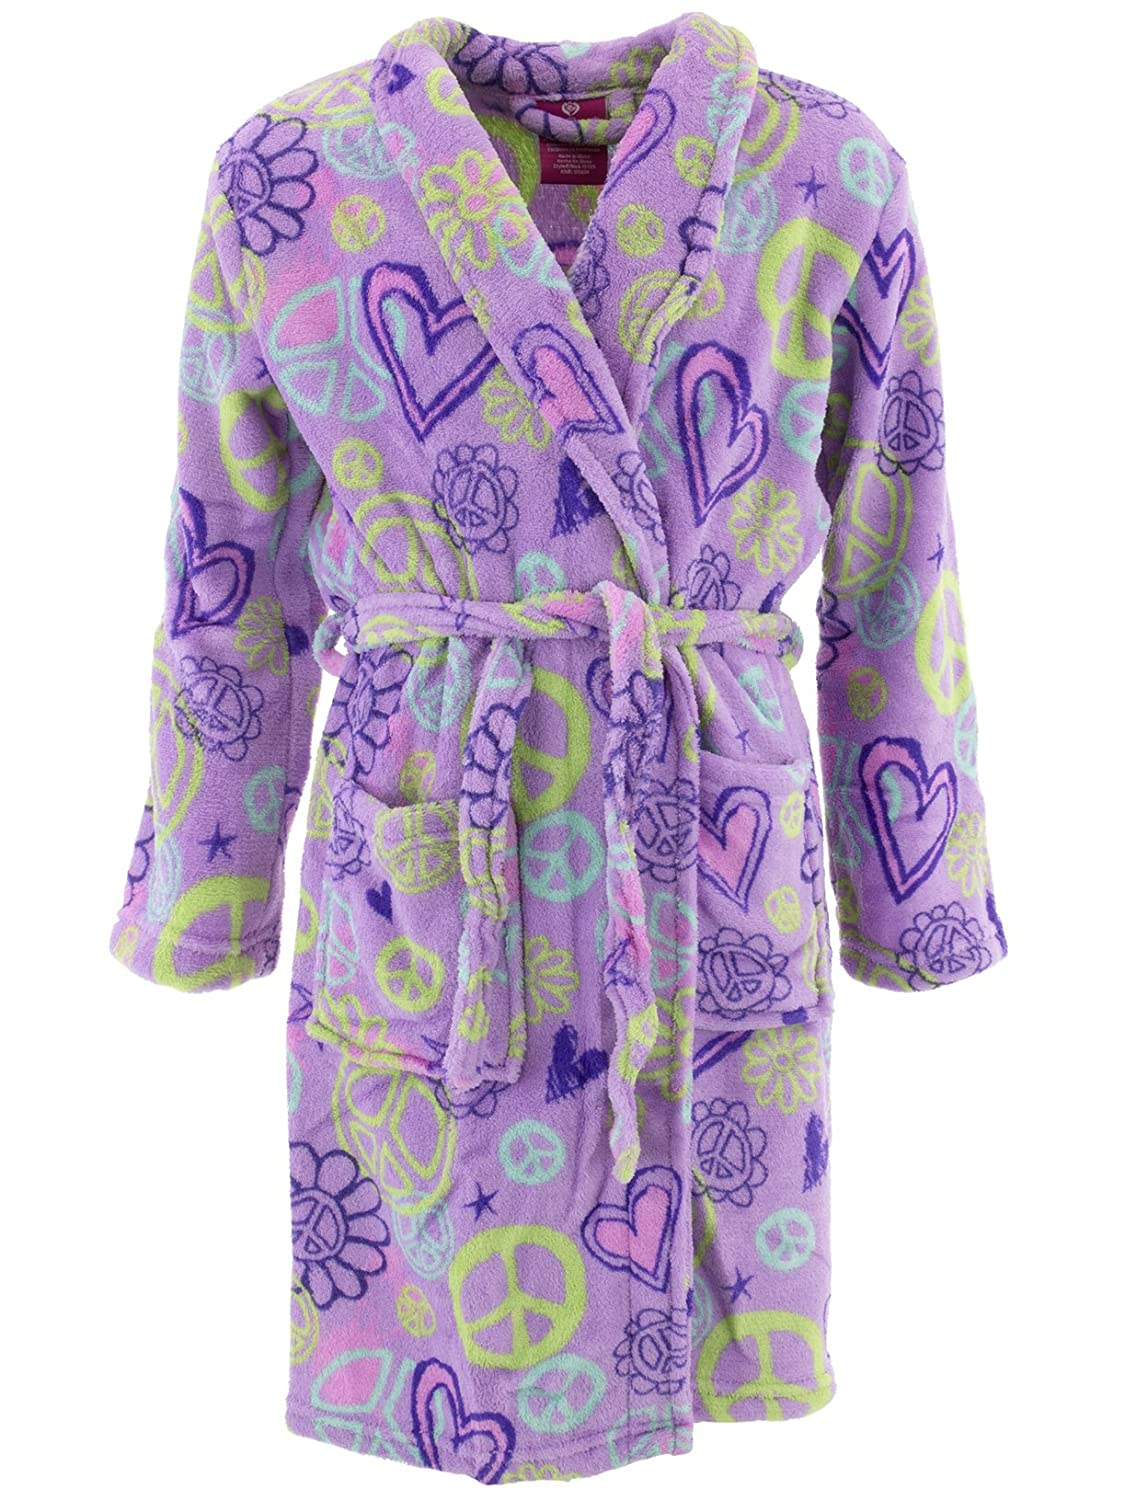 Chili Peppers Girls' Plush Fleece Bath Robe